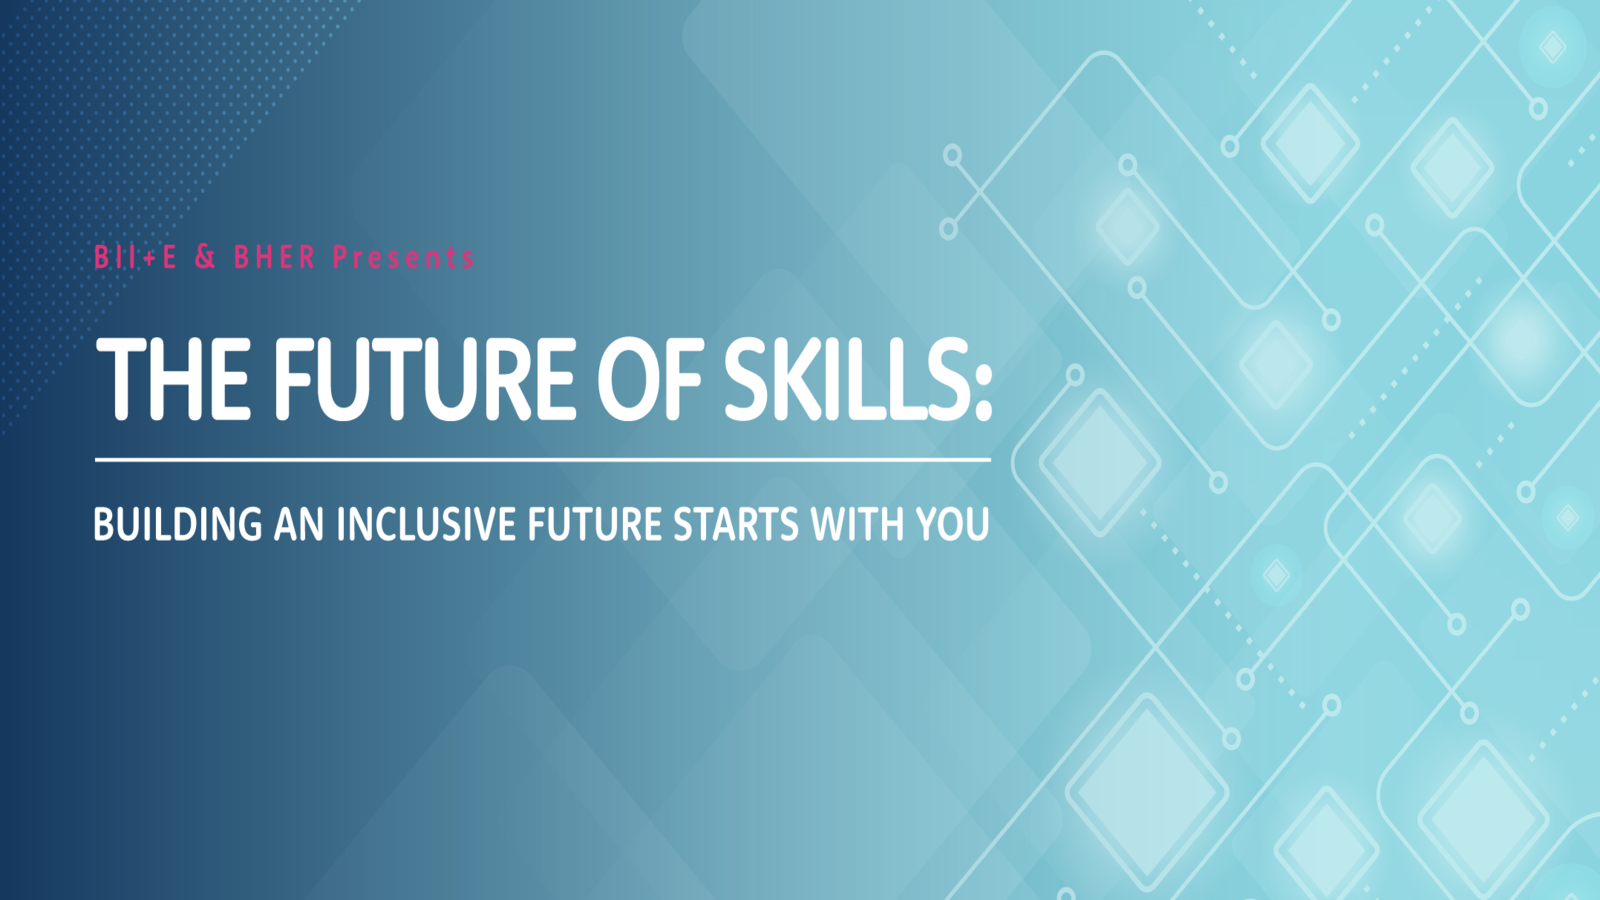 The Future of Skills: Building an inclusive future starts with you